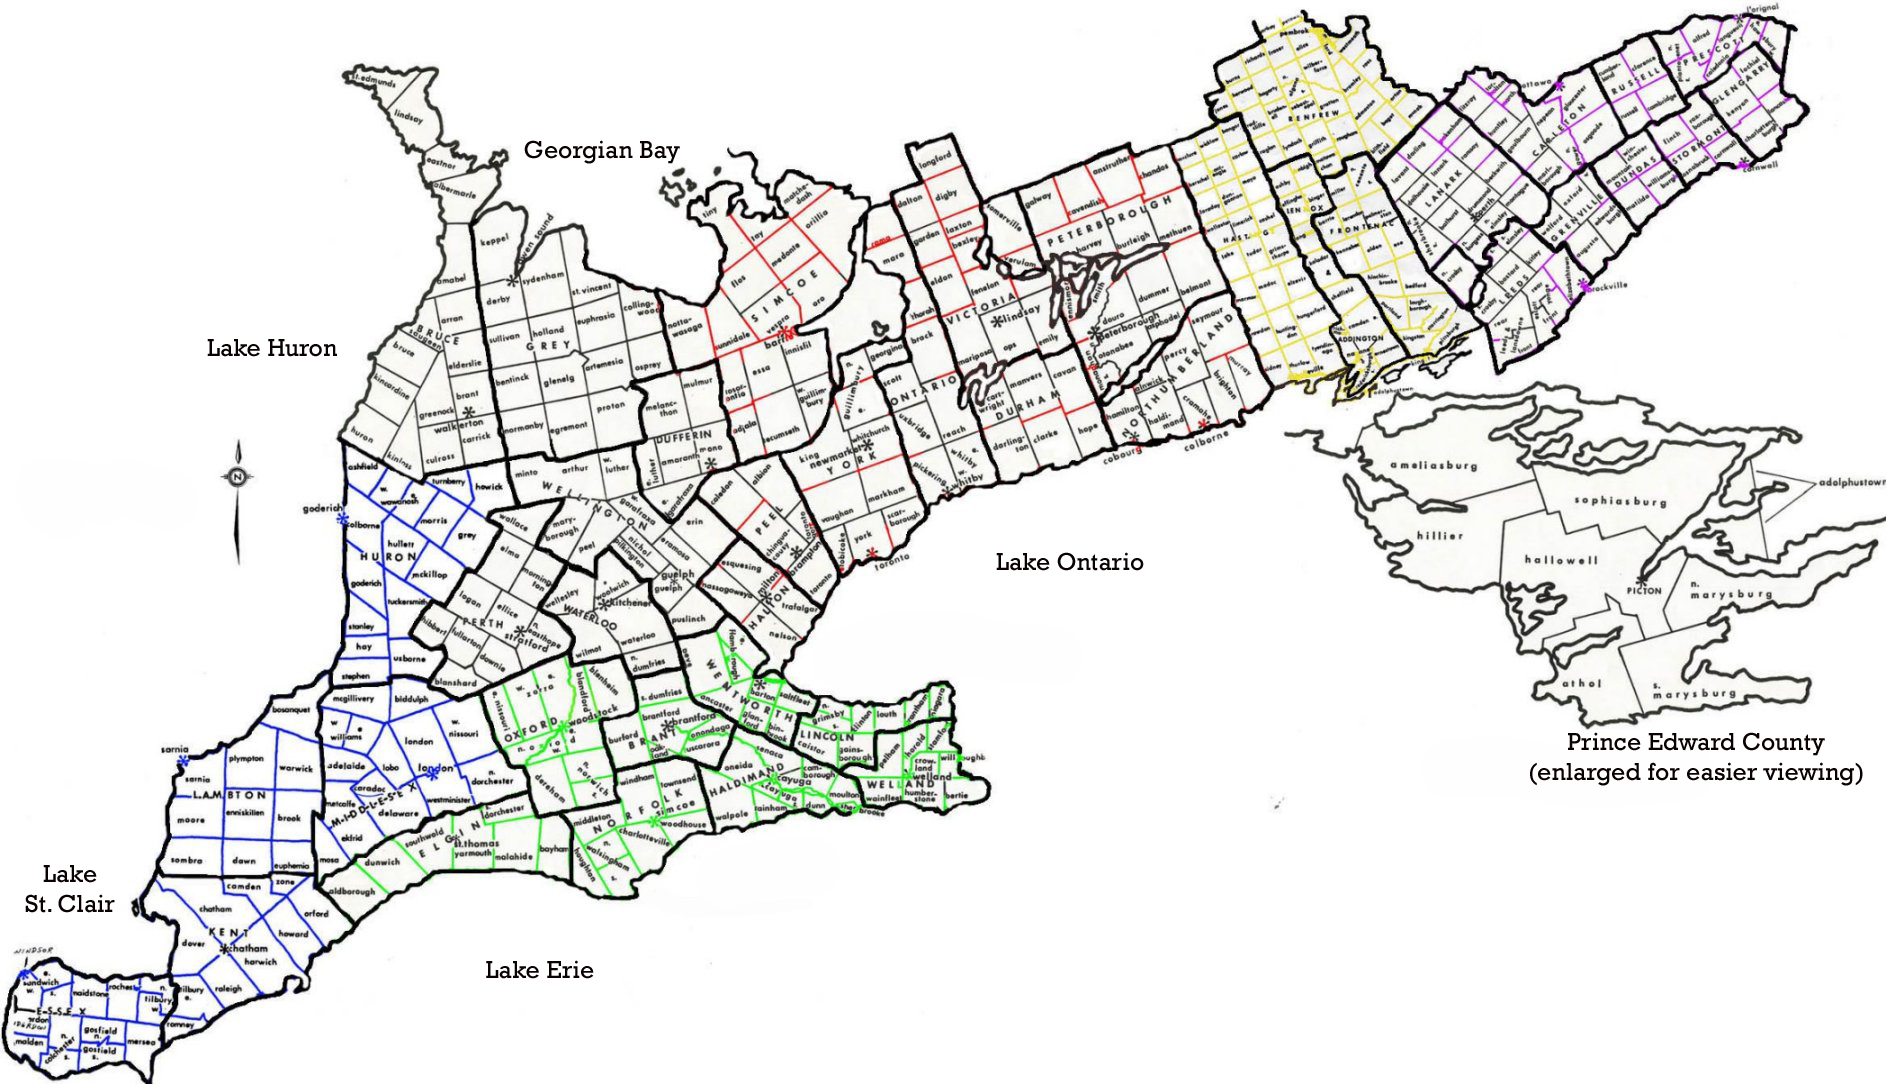 Map Of Ontario Counties Canada Ontario Map including Township and County boundaries